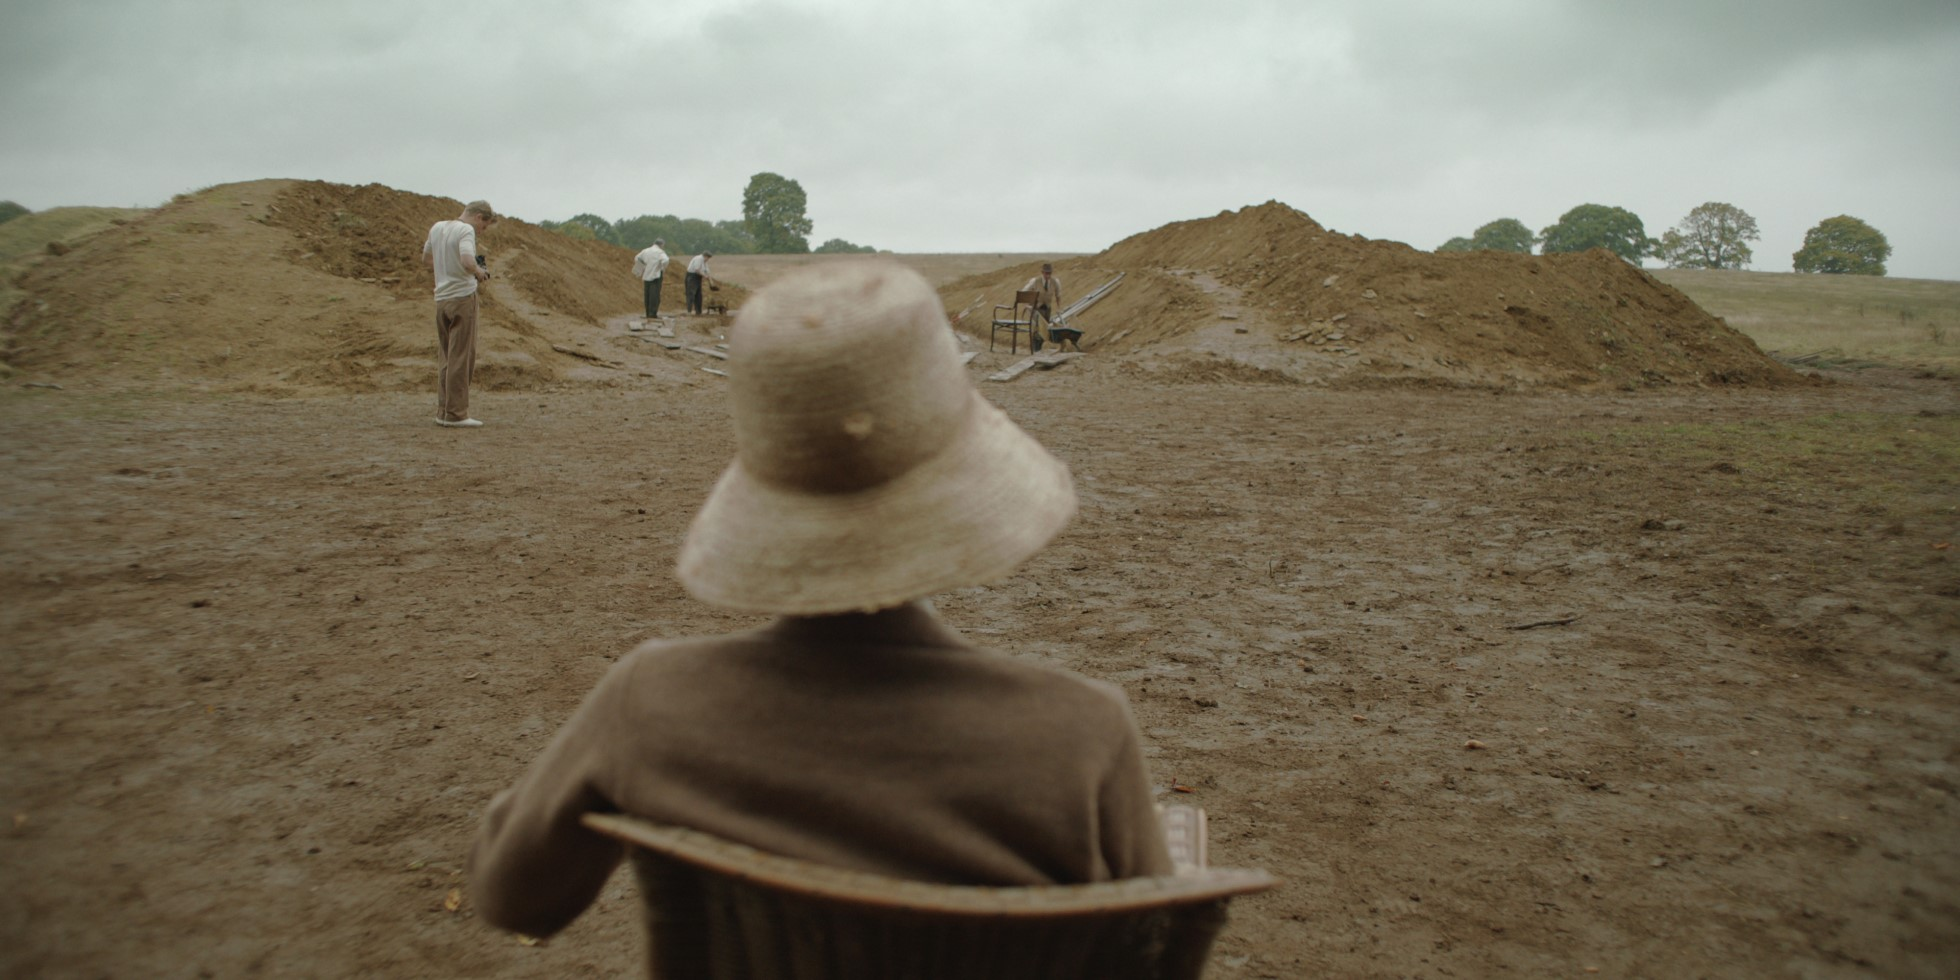 Still from the film showing Carey Mulligan as Edith Pretty. She is shot from behind sitting in a seat. She is wearing a brown jacket and straw hat. She is observing excavations in the background, where several men are seen amongst piles of soil.